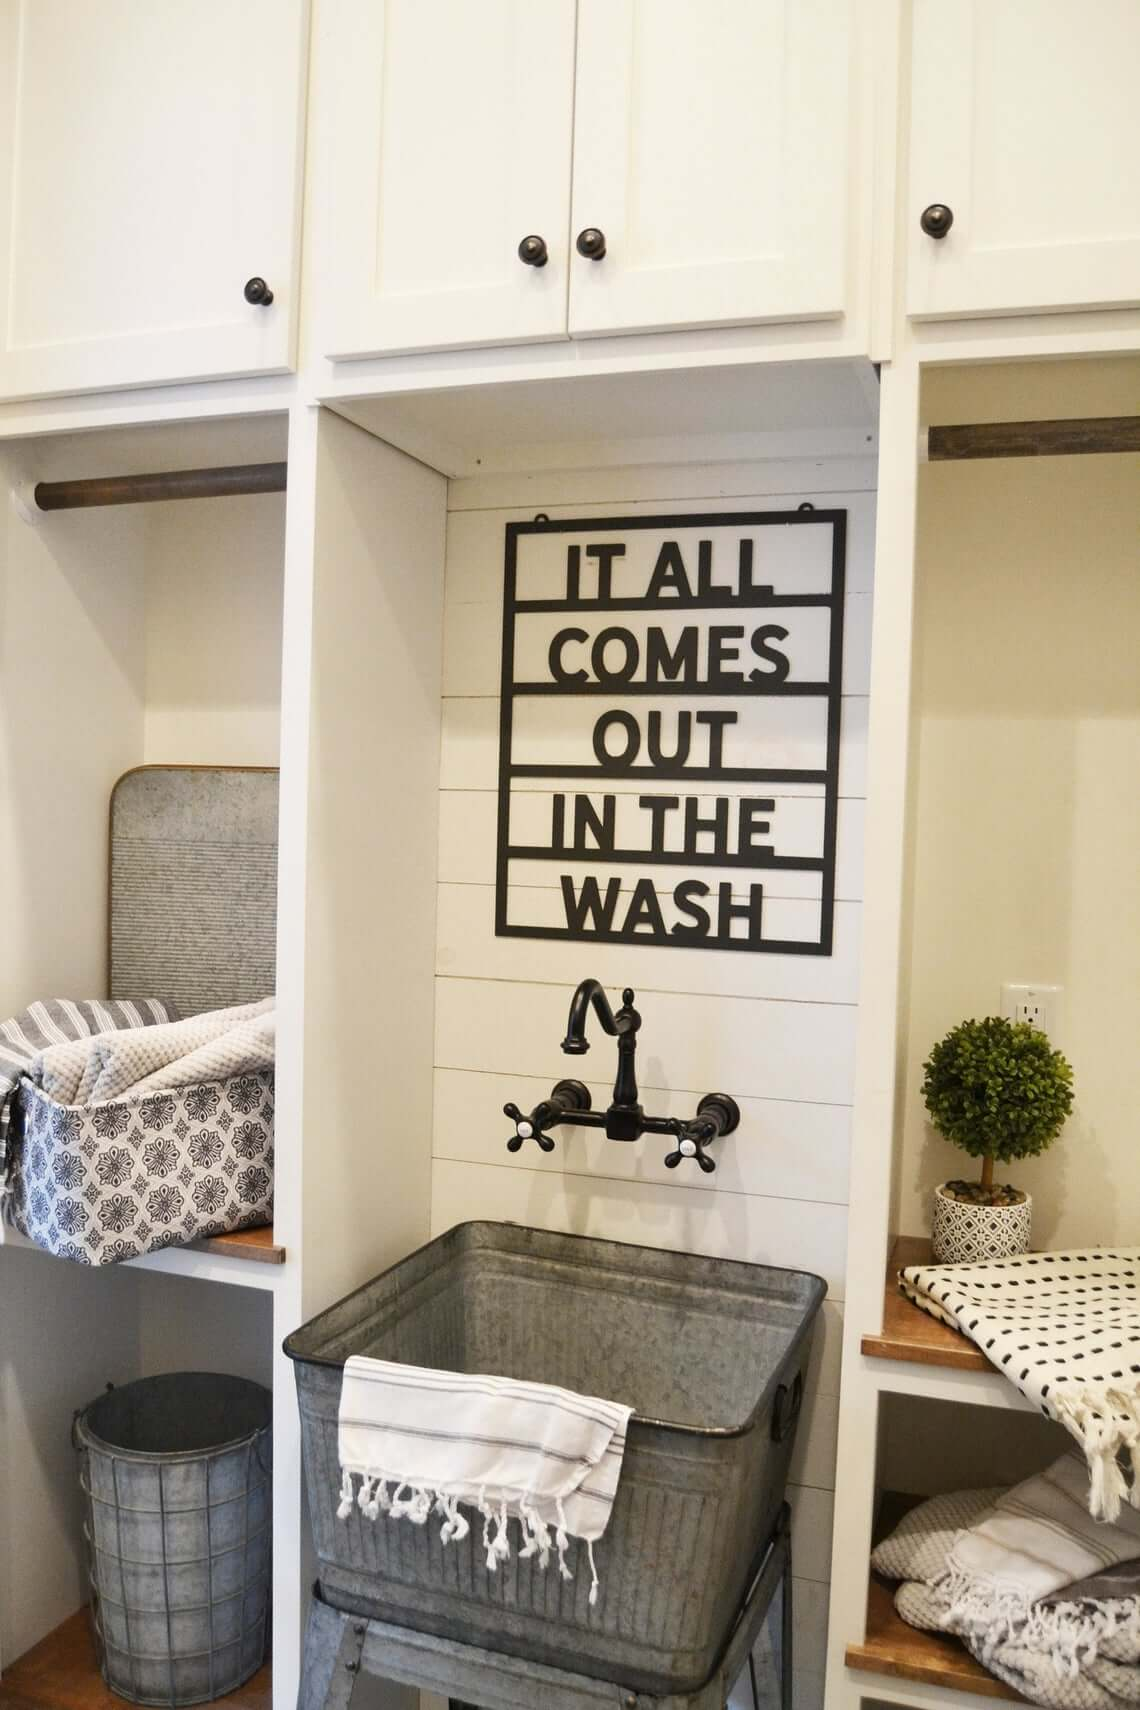 Fun Laundry Sign and Metal Wash Tub